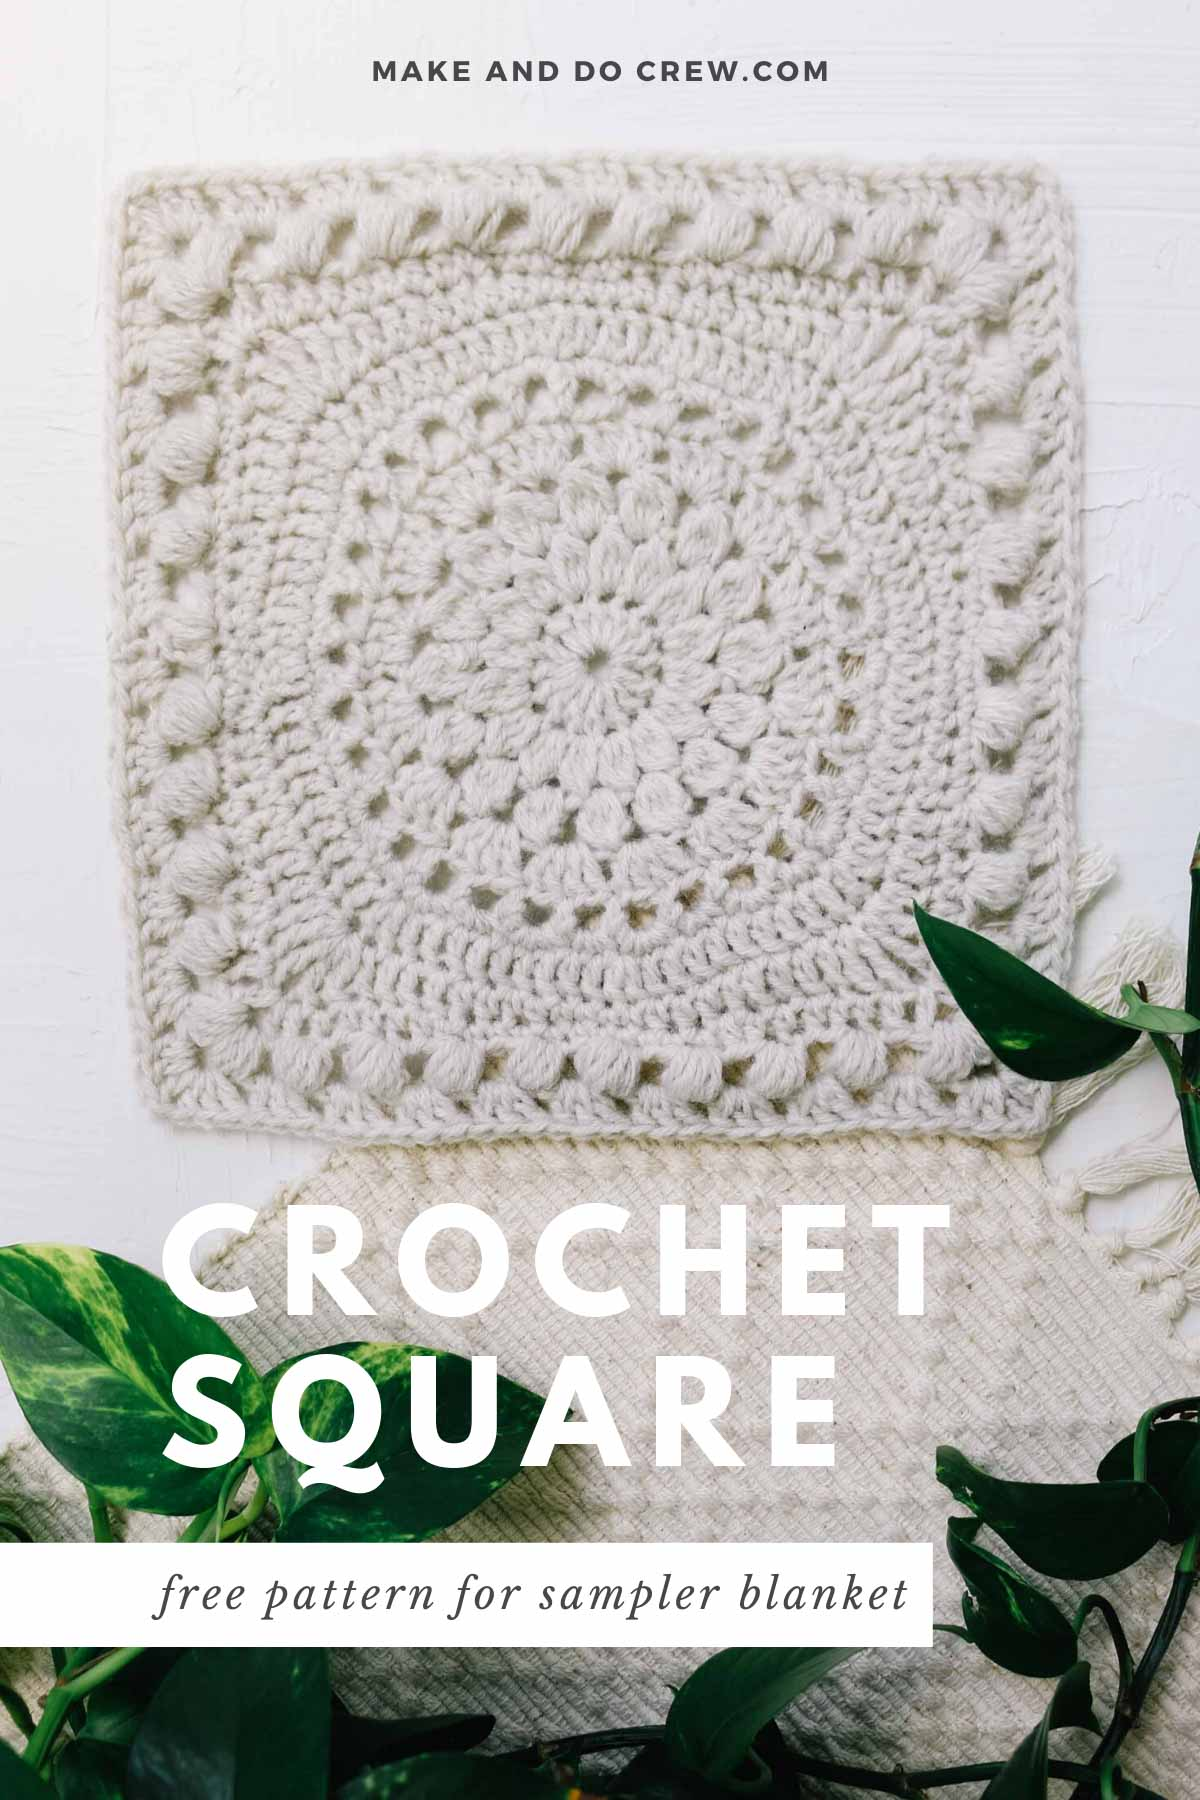 A crochet square to make a blanket made from Lion Brand Wool Ease yarn.